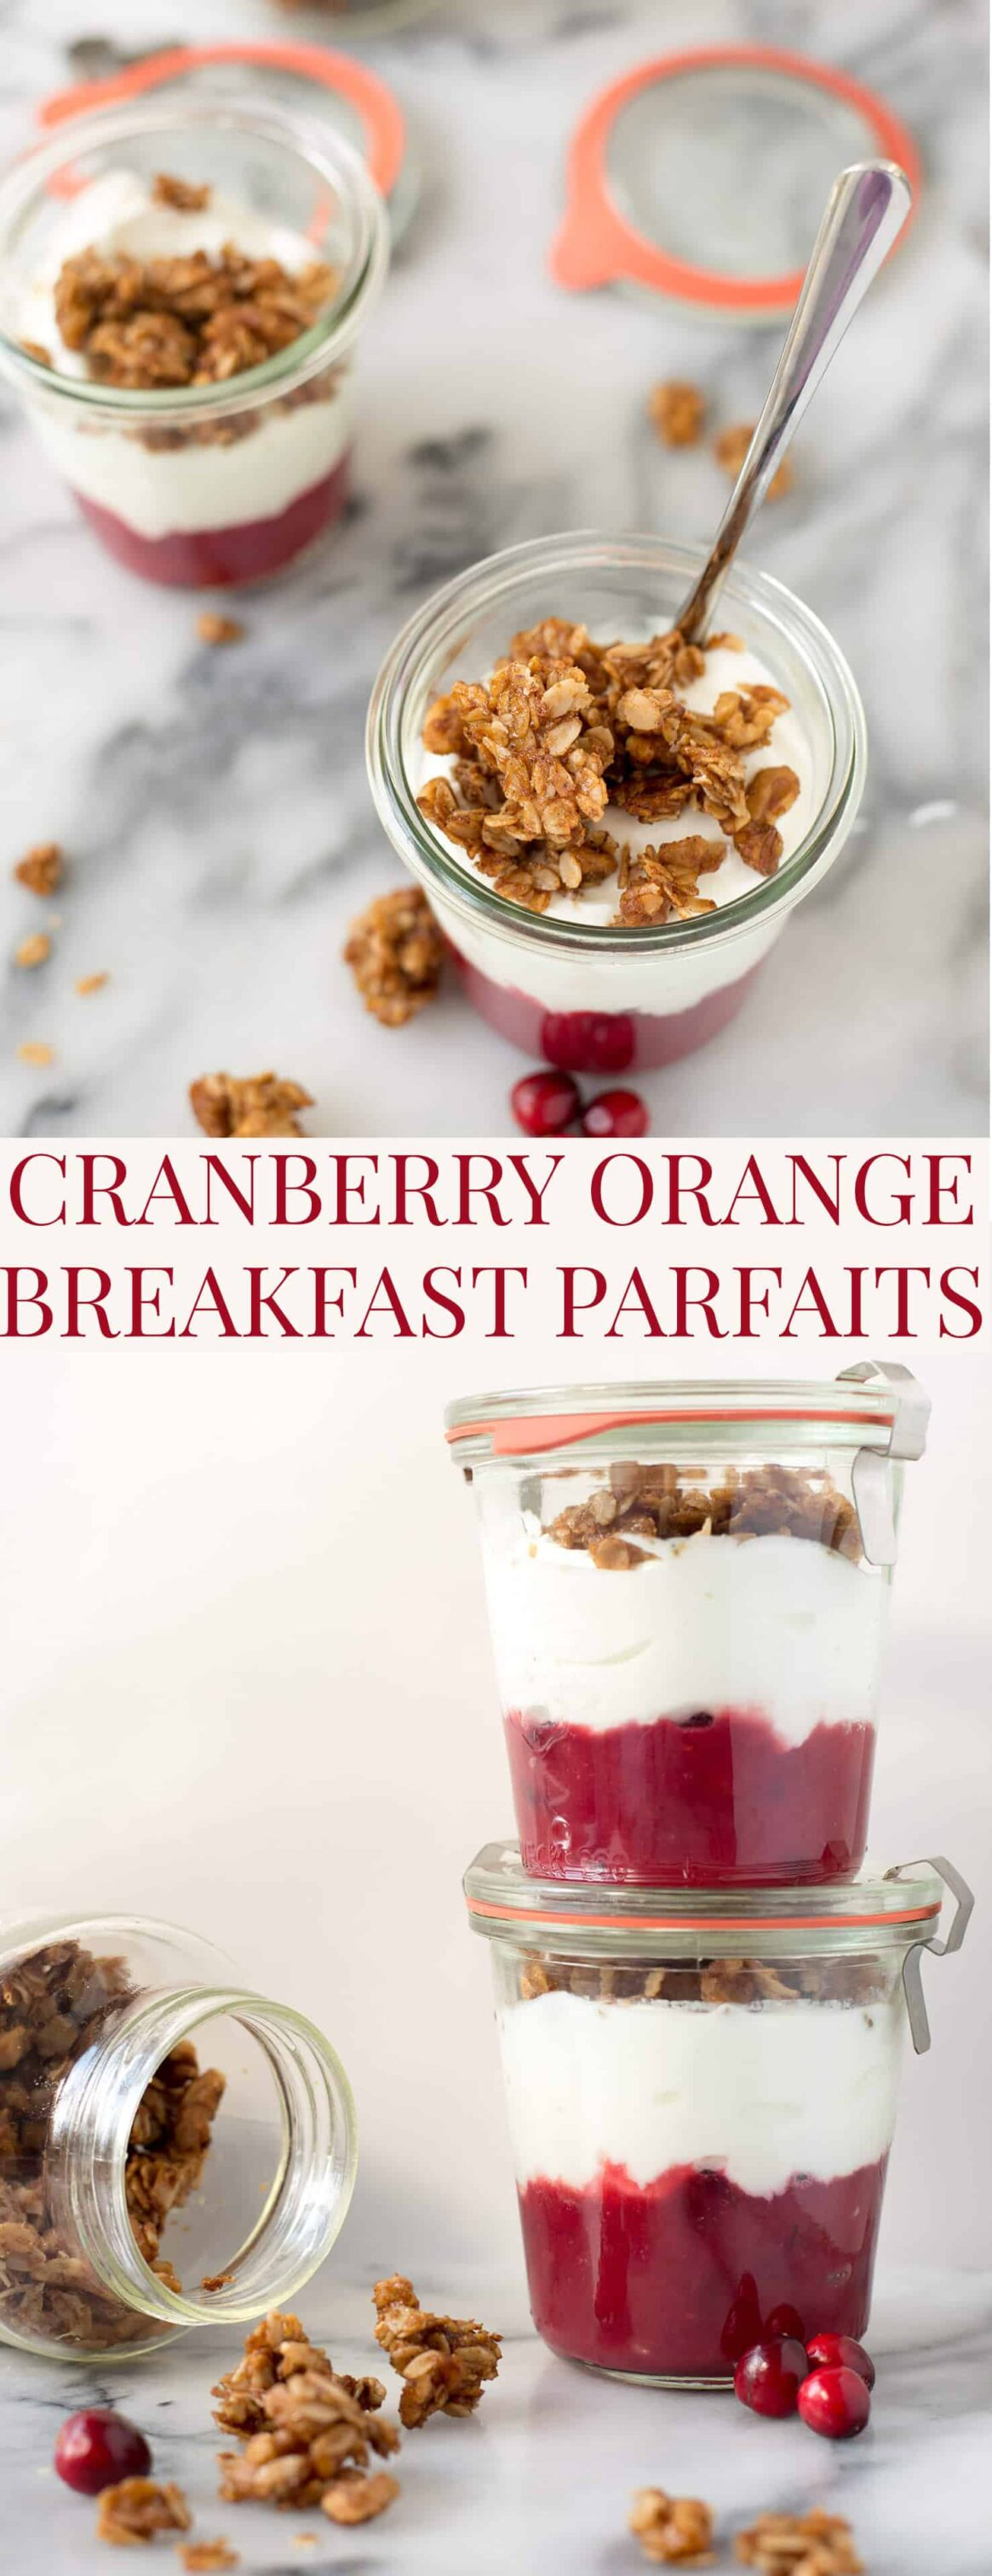 Cranberry Breakfast Parfaits! Layers of cranberry orange compote, greek yogurt and homemade spiced granola. Super easy and perfect for busy weekdays. | www.delishknowledge.com